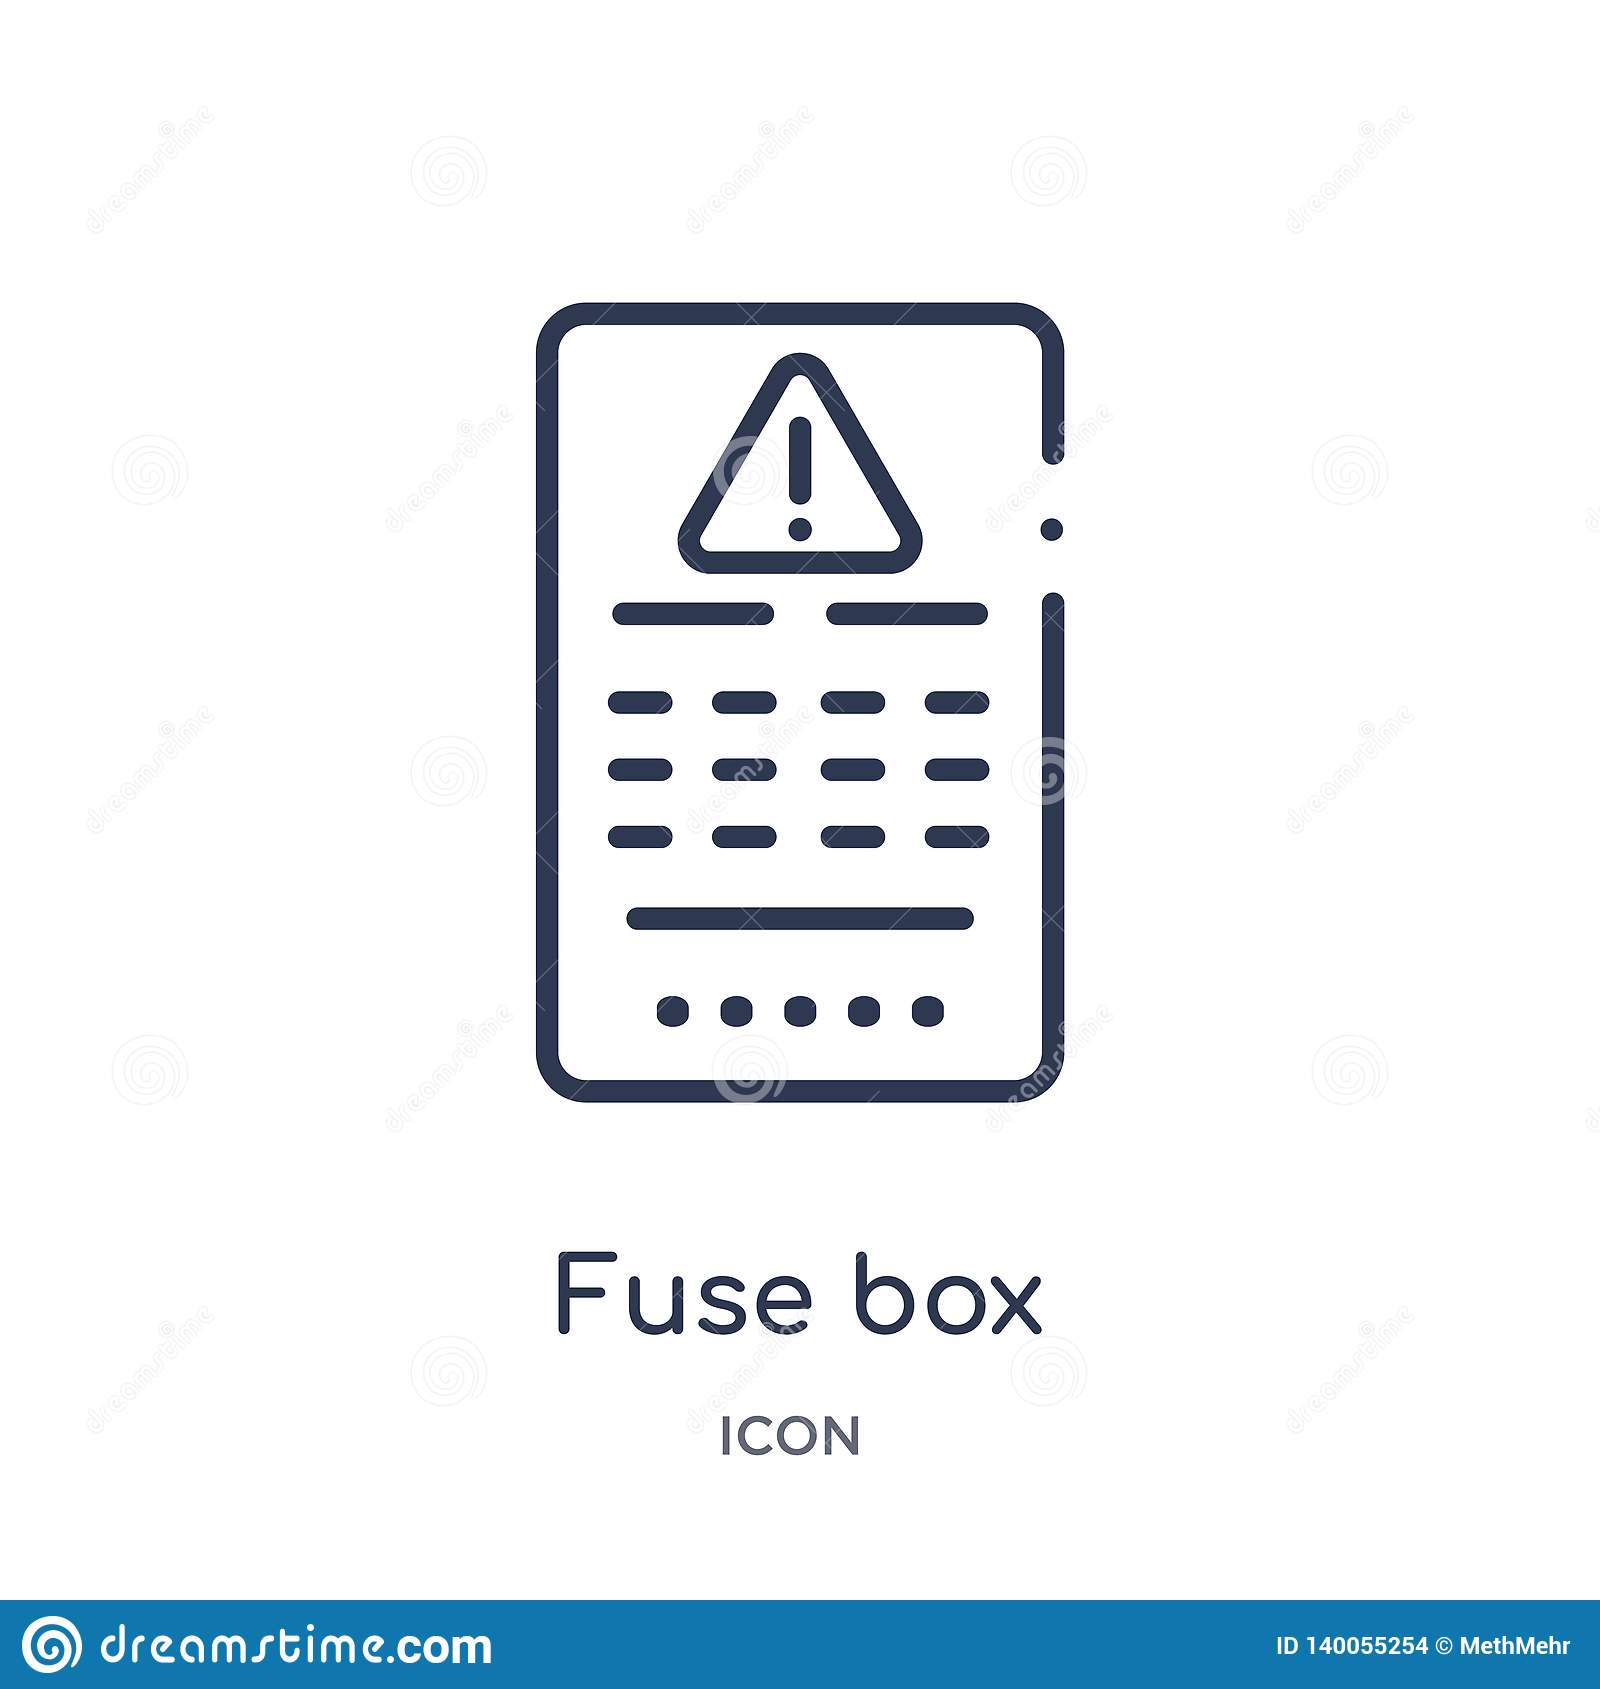 hight resolution of linear fuse box icon from electrian connections outline collection thin line fuse box vector isolated on white background fuse box trendy illustration